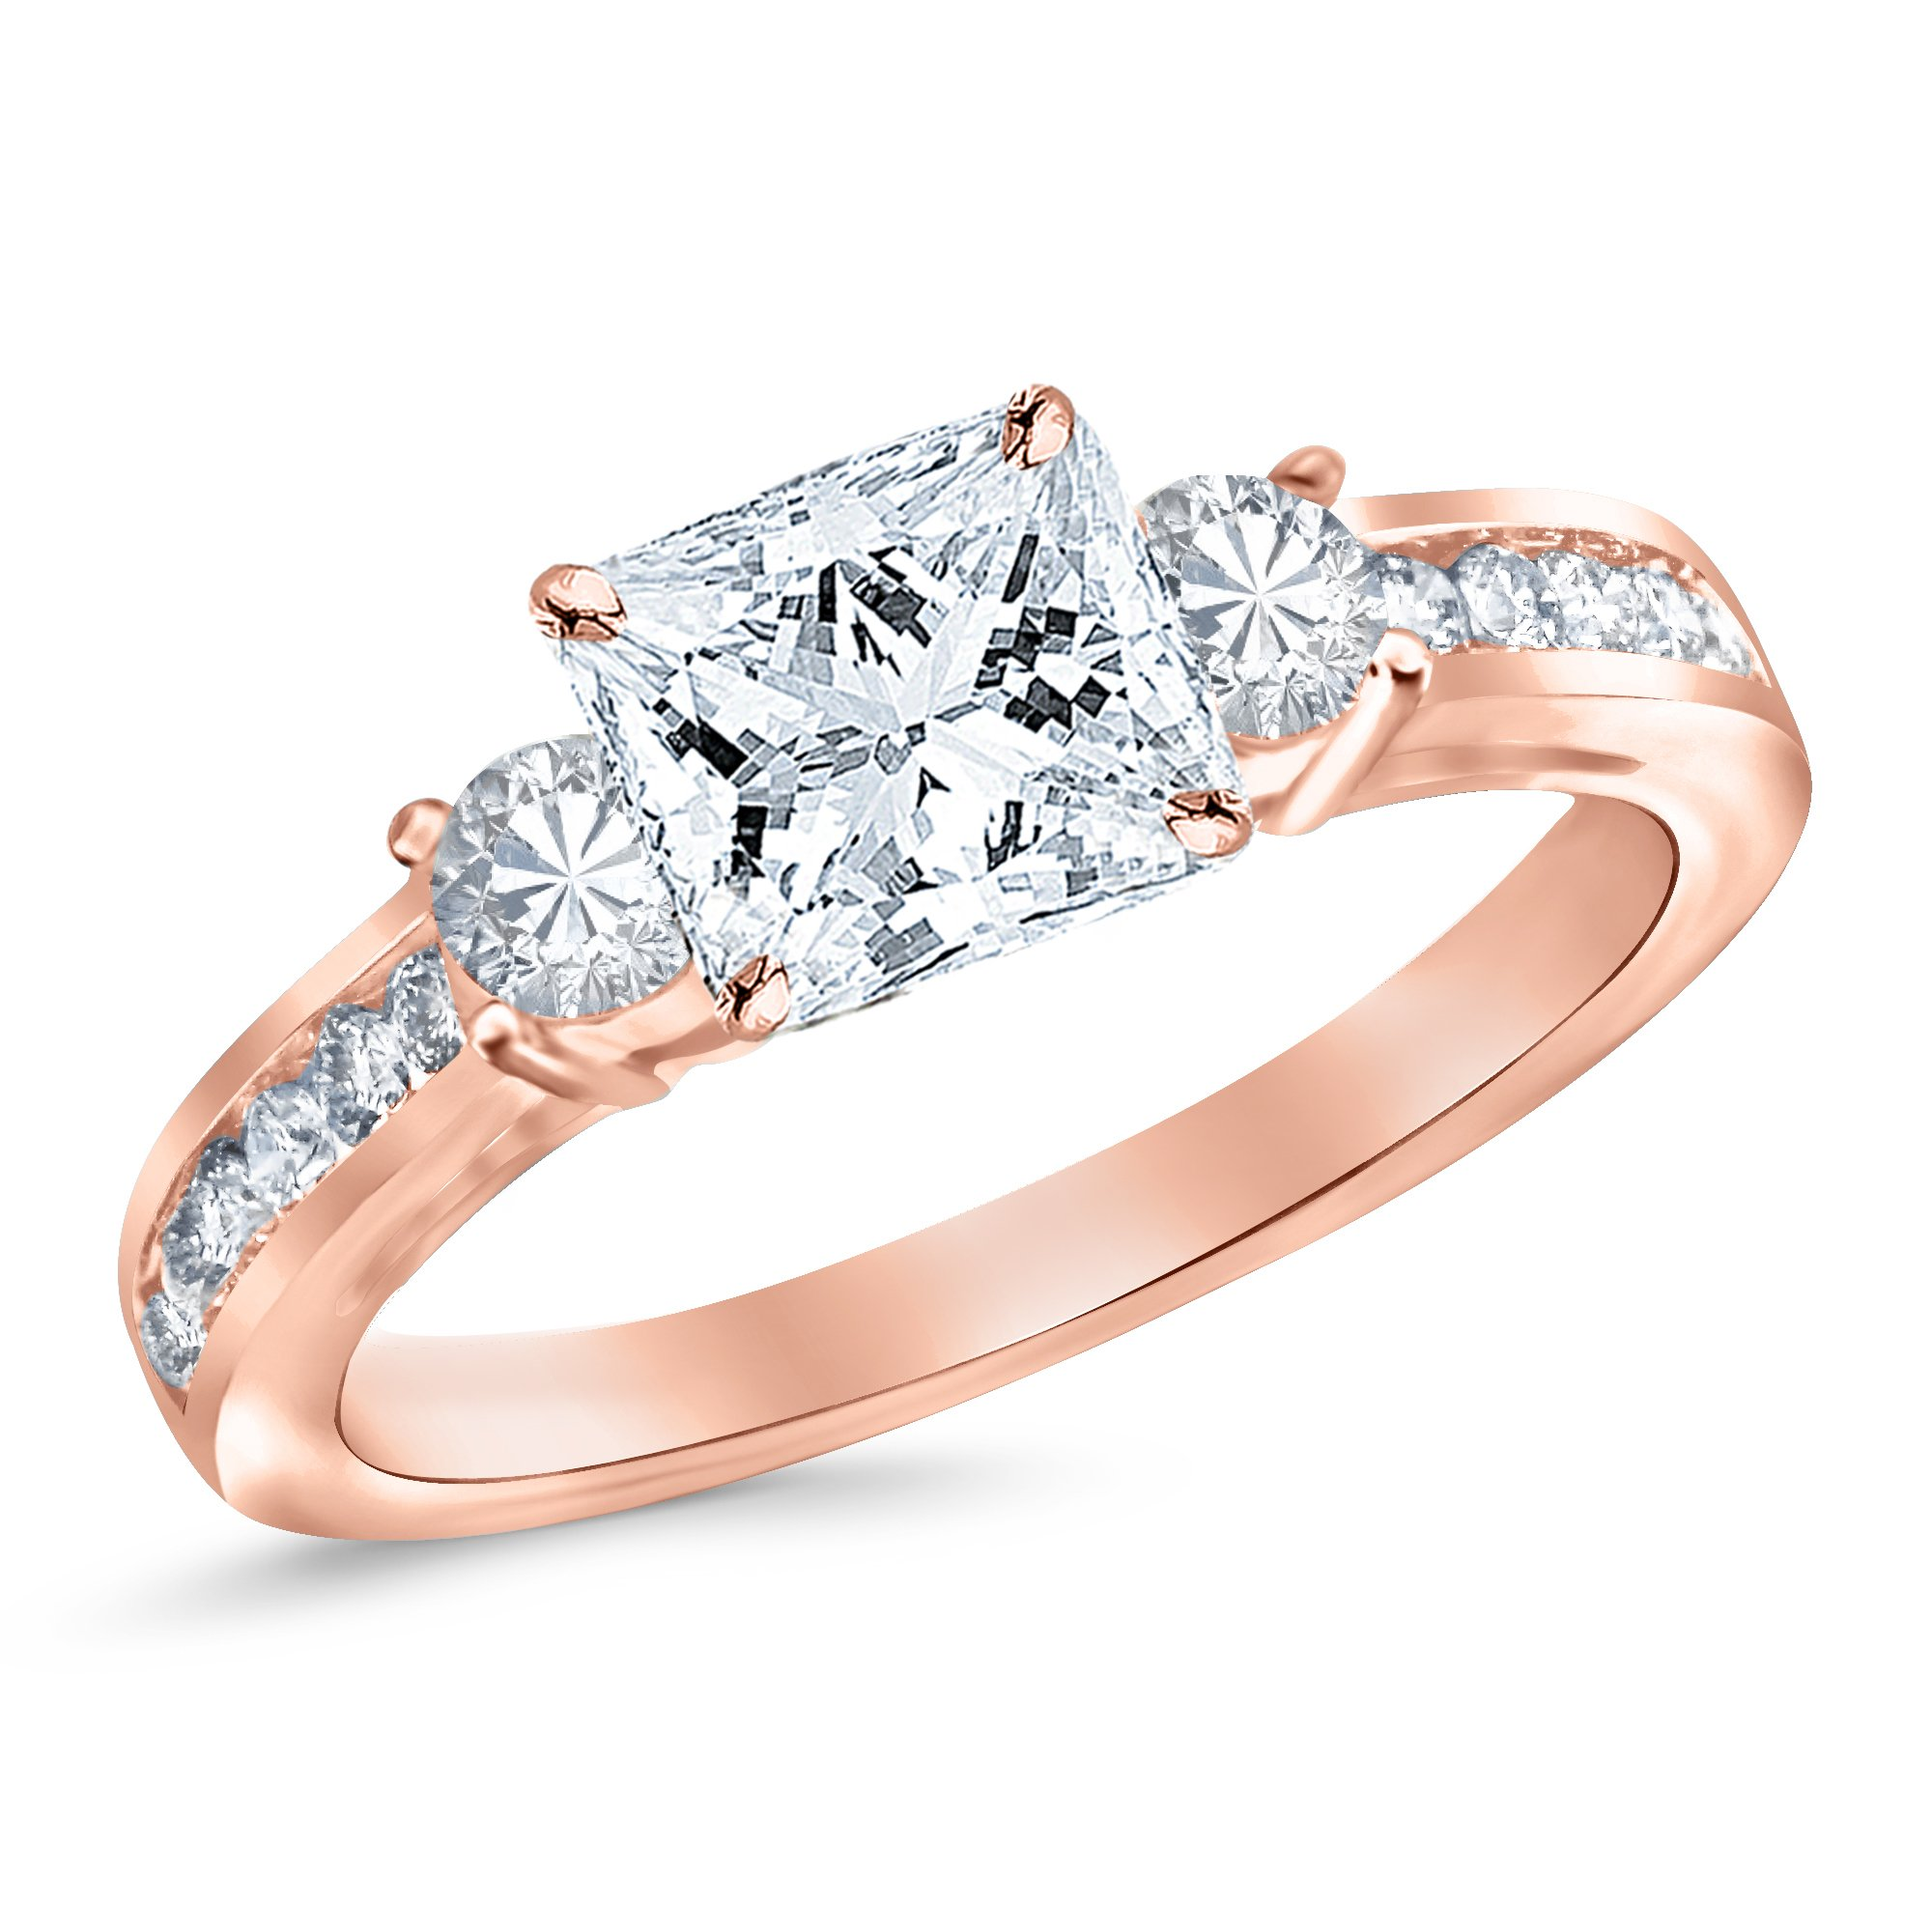 Rose Gold 3 Stone Channel Set Princess Cut Diamond Engagement Ring with a 0.5 Carat GIA Certified Princess Cut E Color VS1 Clarity Center Stone by Houston Diamond District